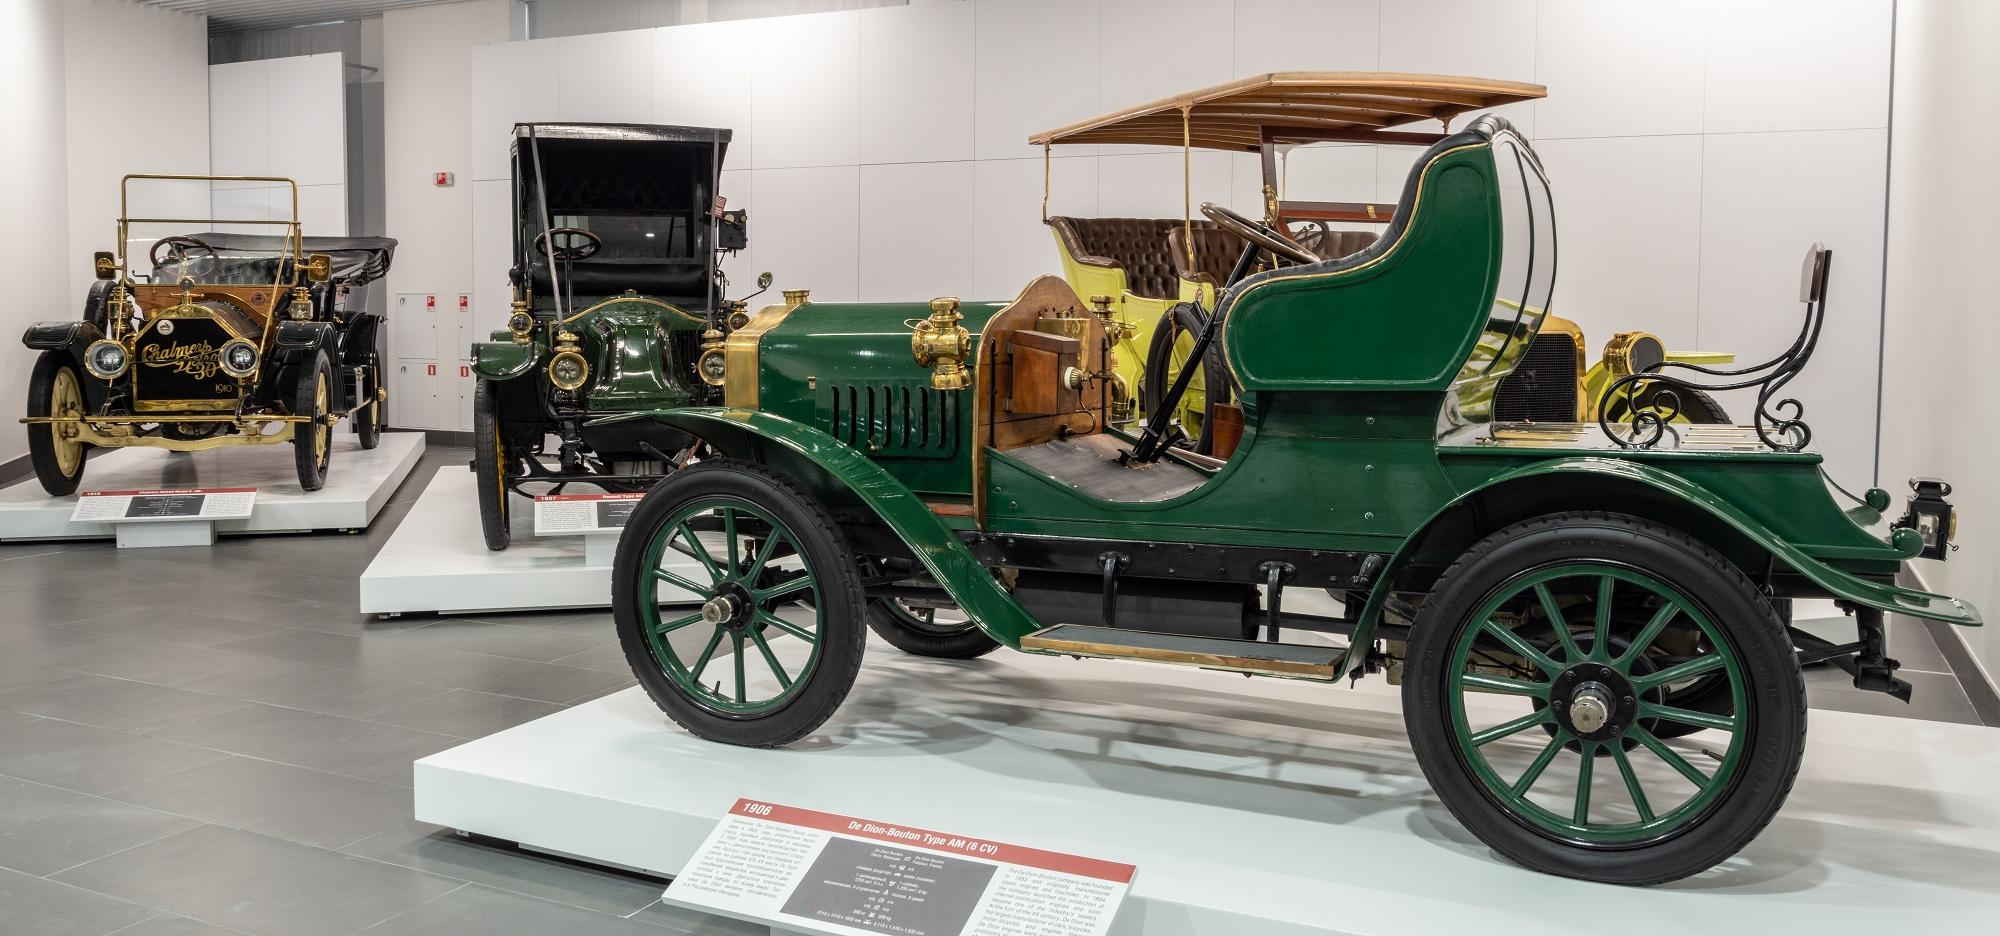 Cars from the late 19th to the early 20th centuries